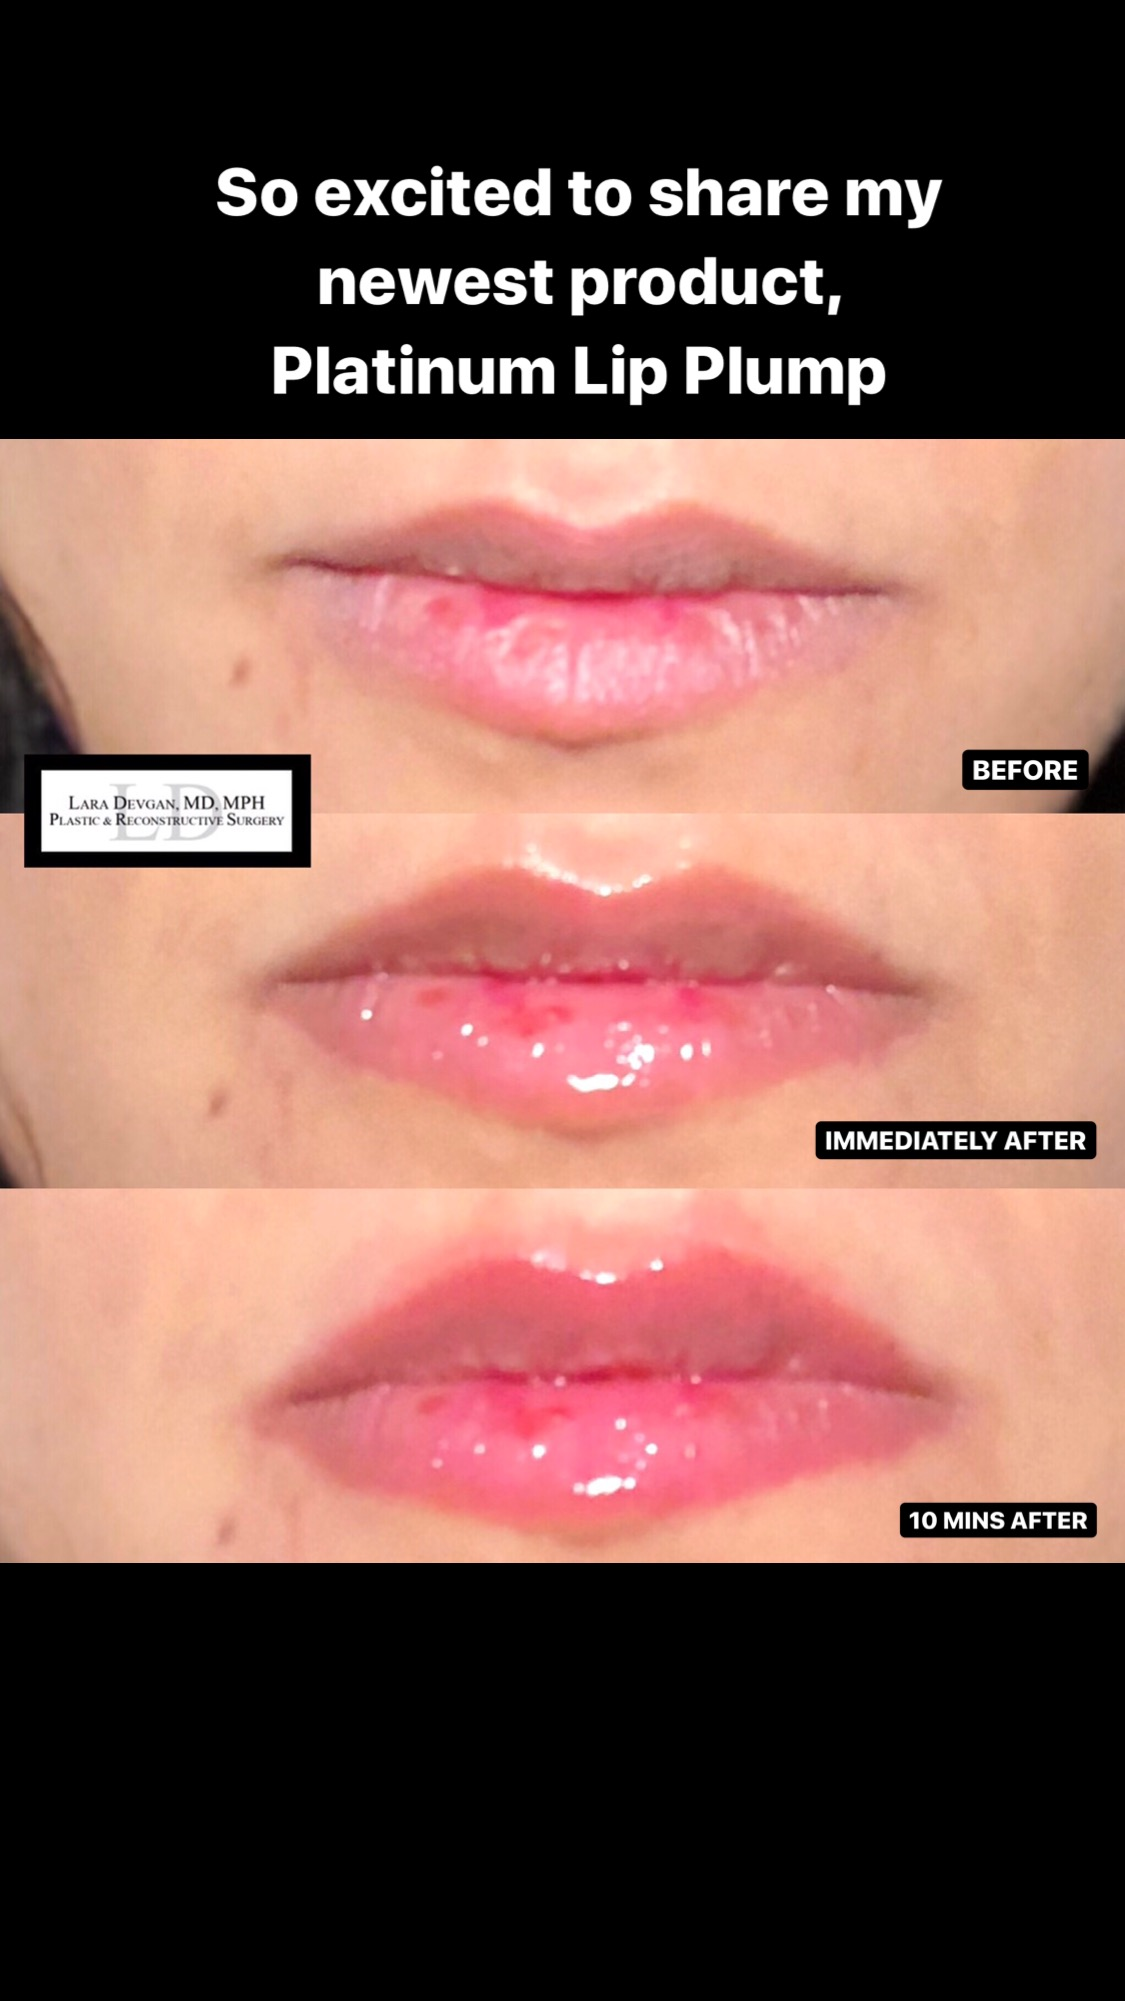 My own before and after photos with Platinum Lip Plump